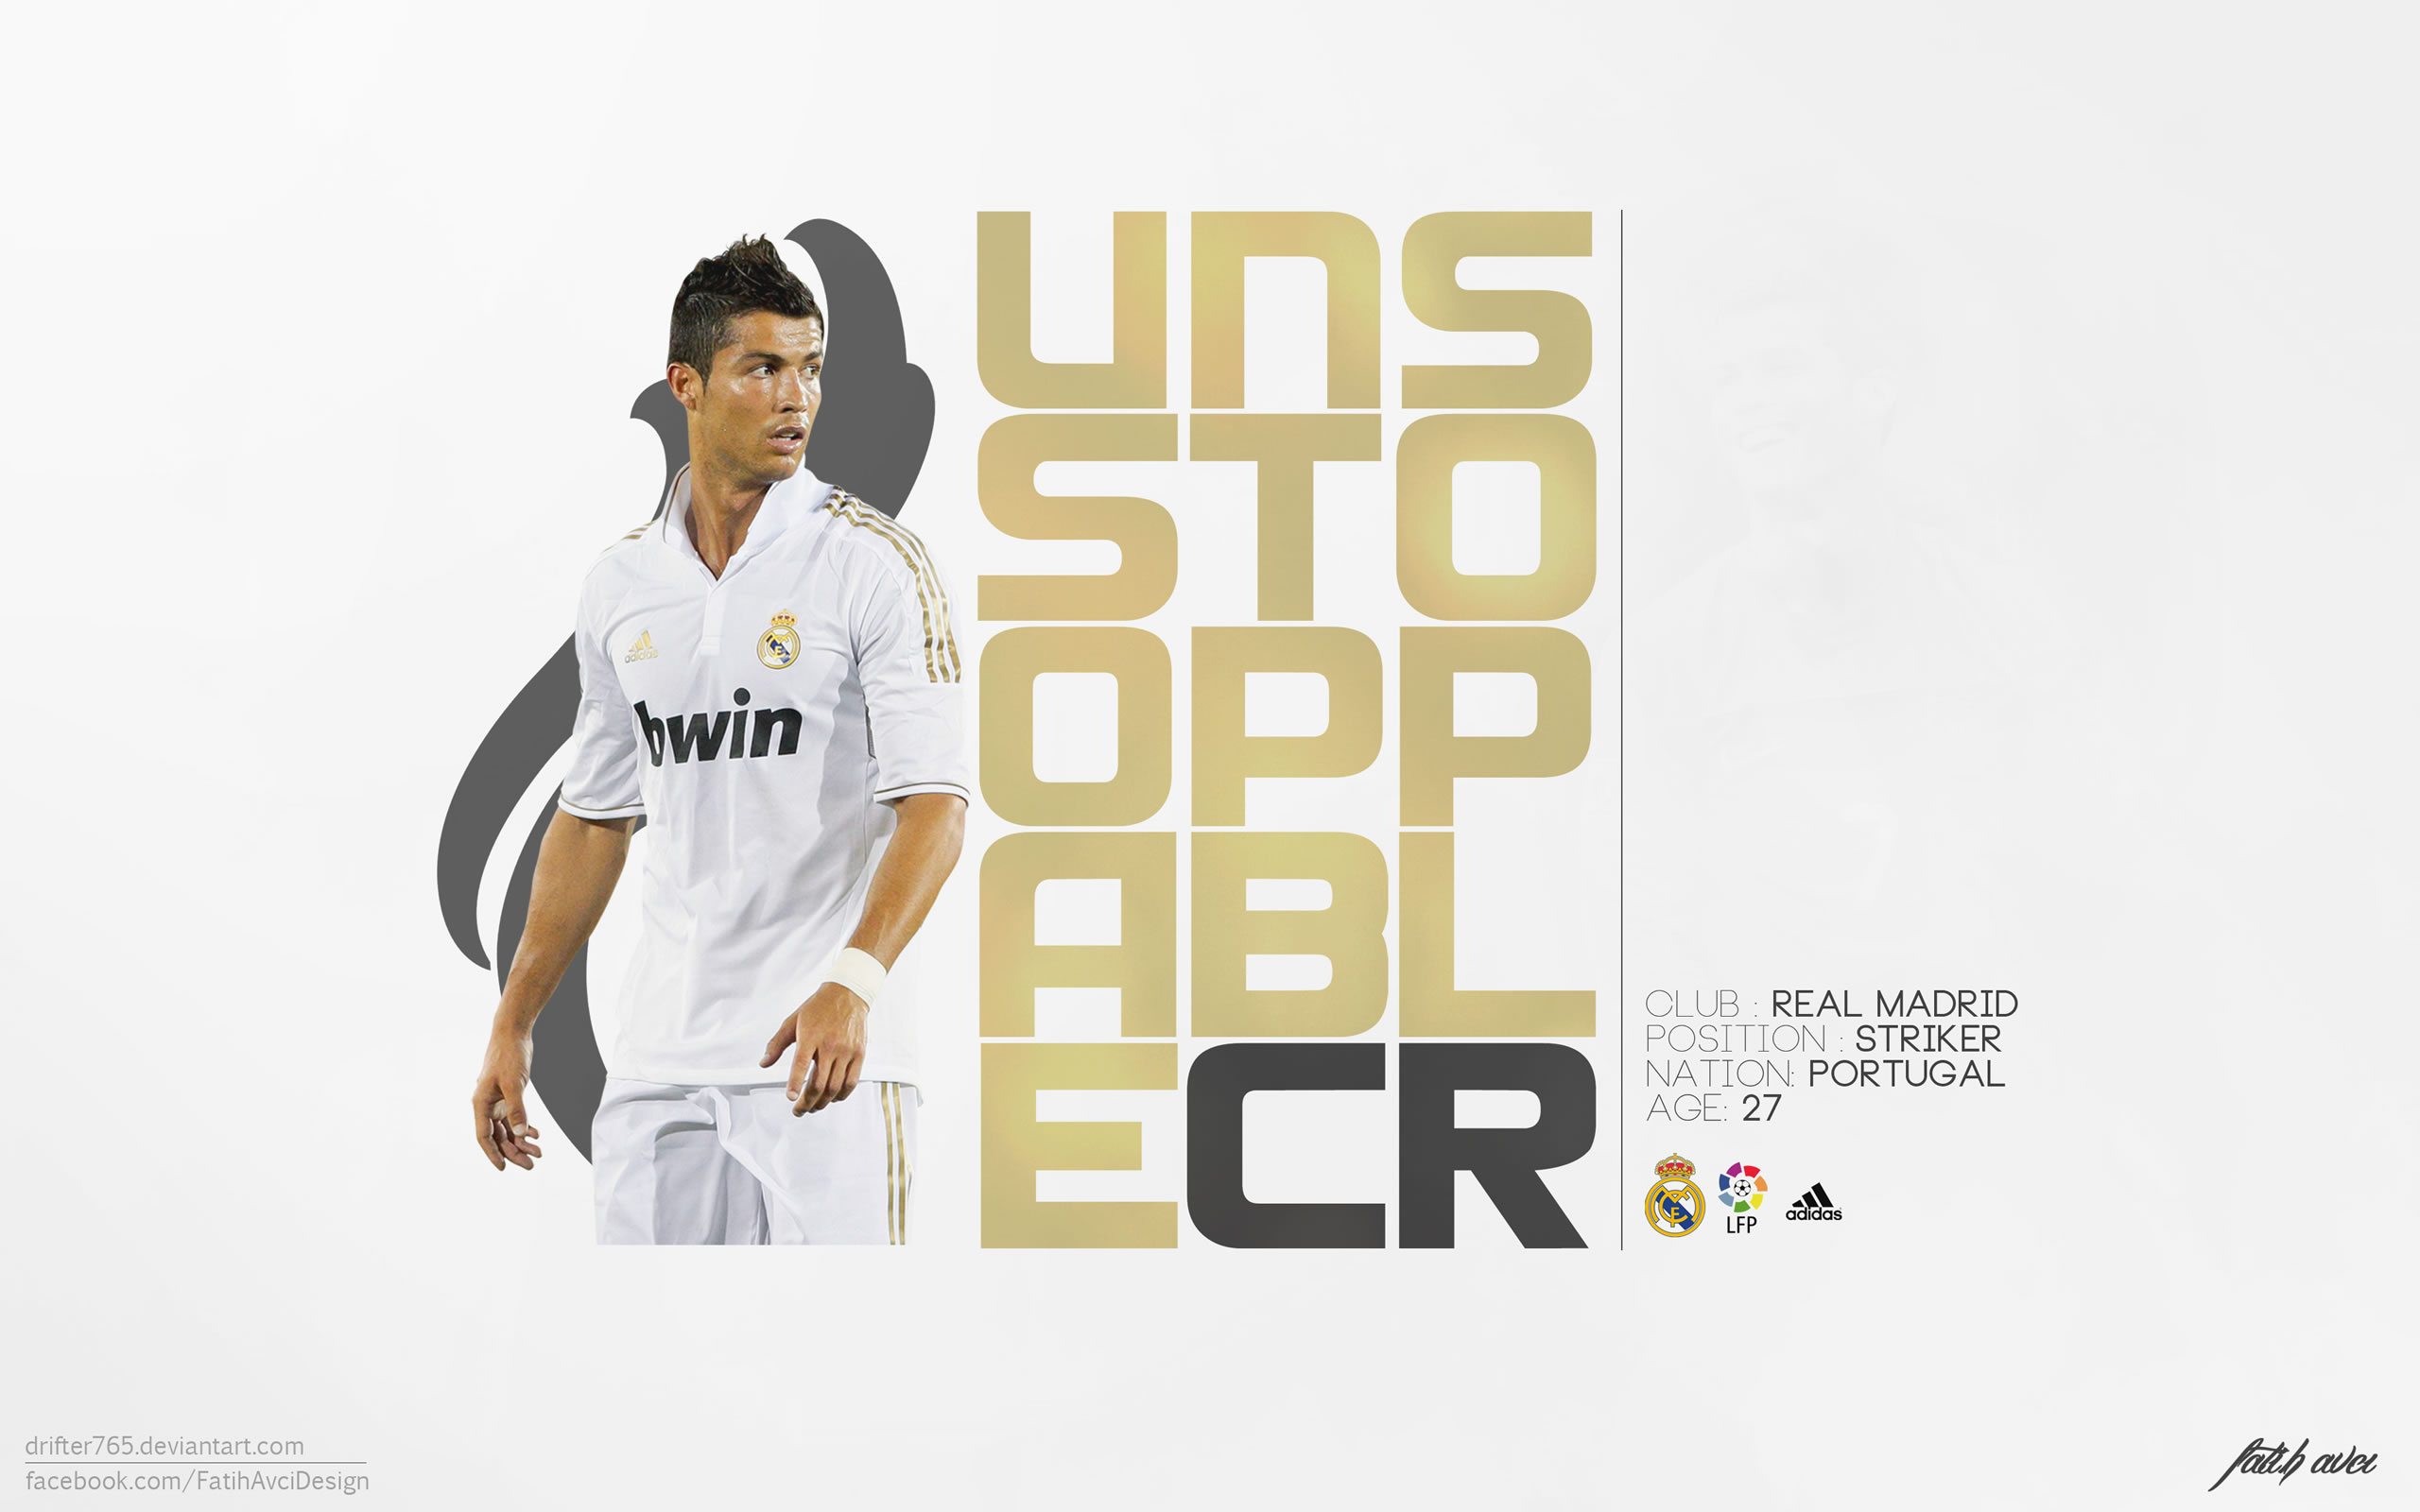 Cristiano Ronaldo unstoppable wallpaper by Drifter765